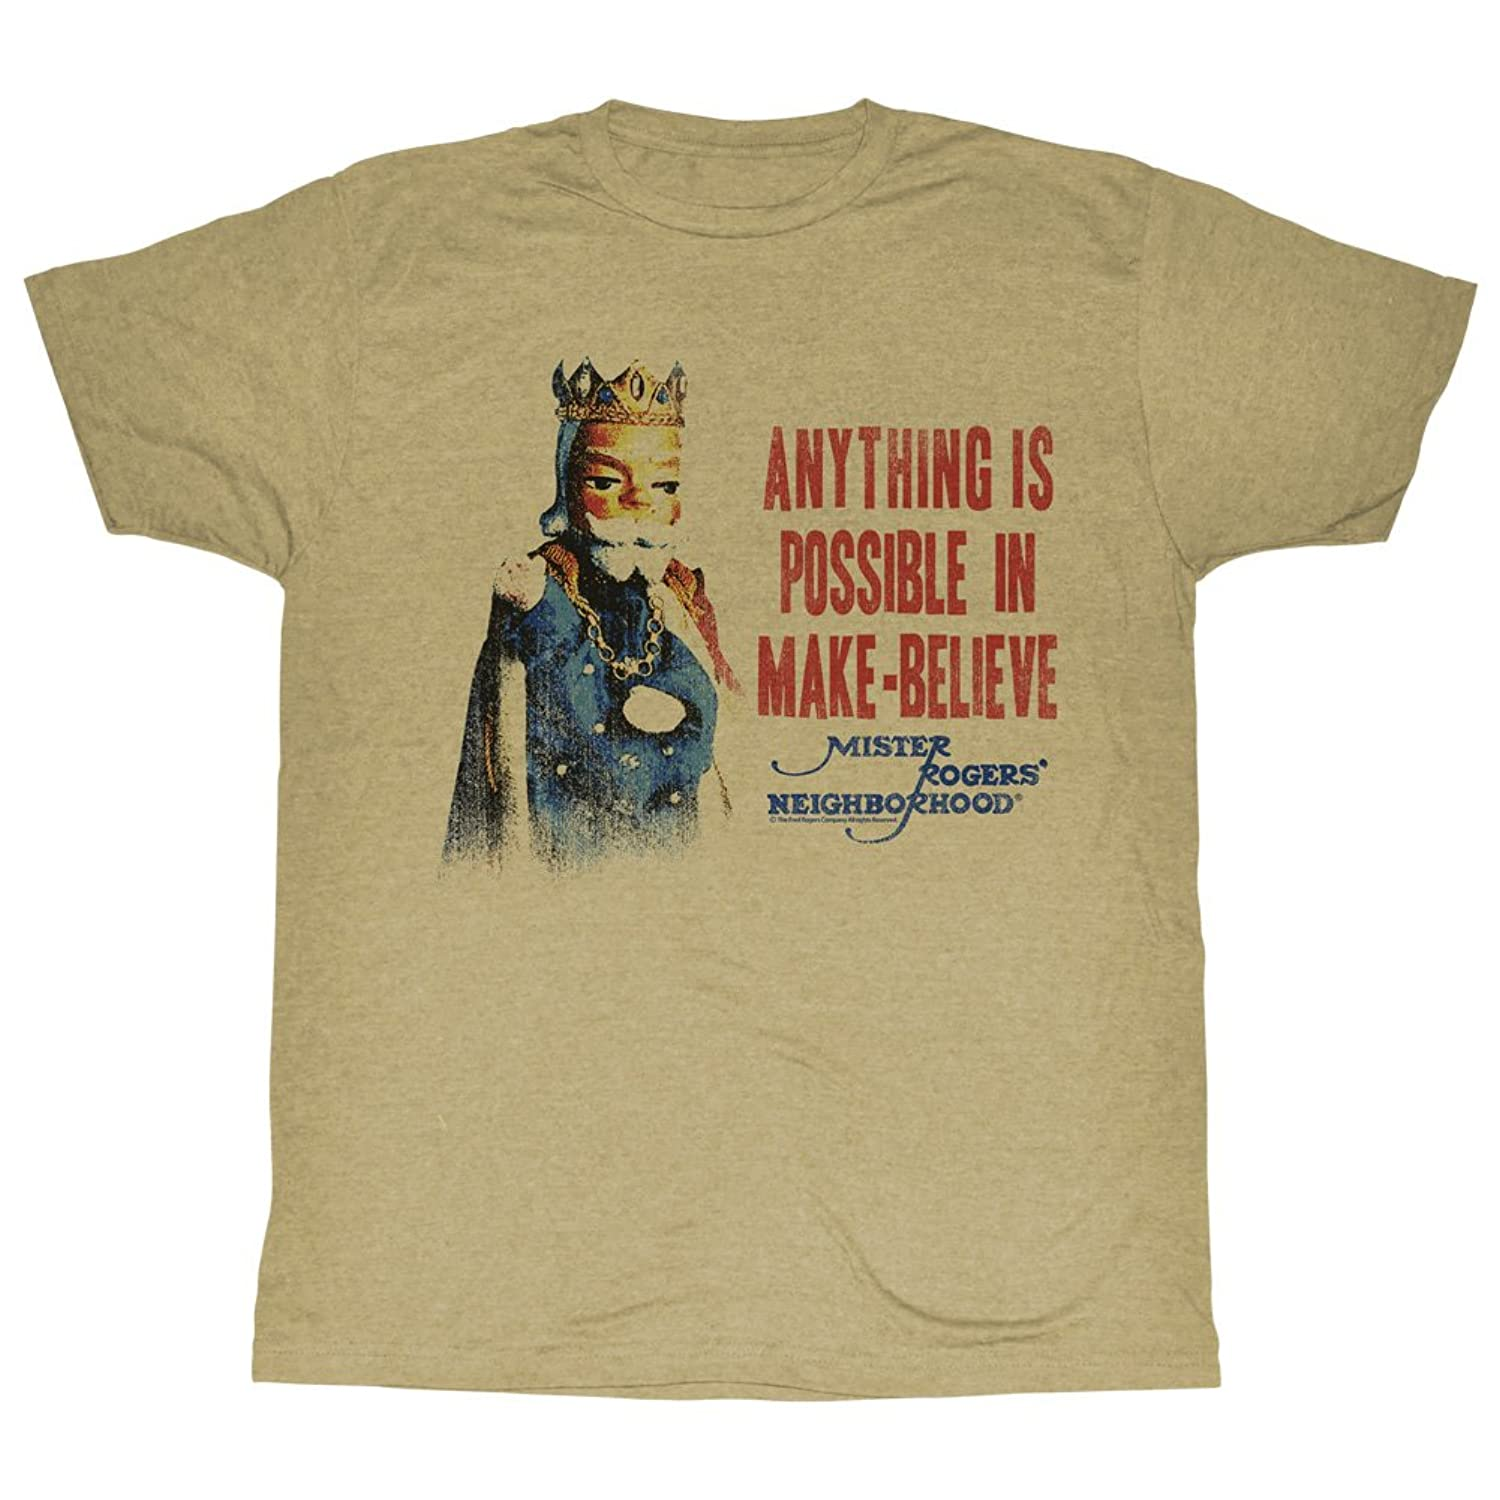 Mister Rogers Children's PBS TV Series Anything is Possible Adult T-Shirt